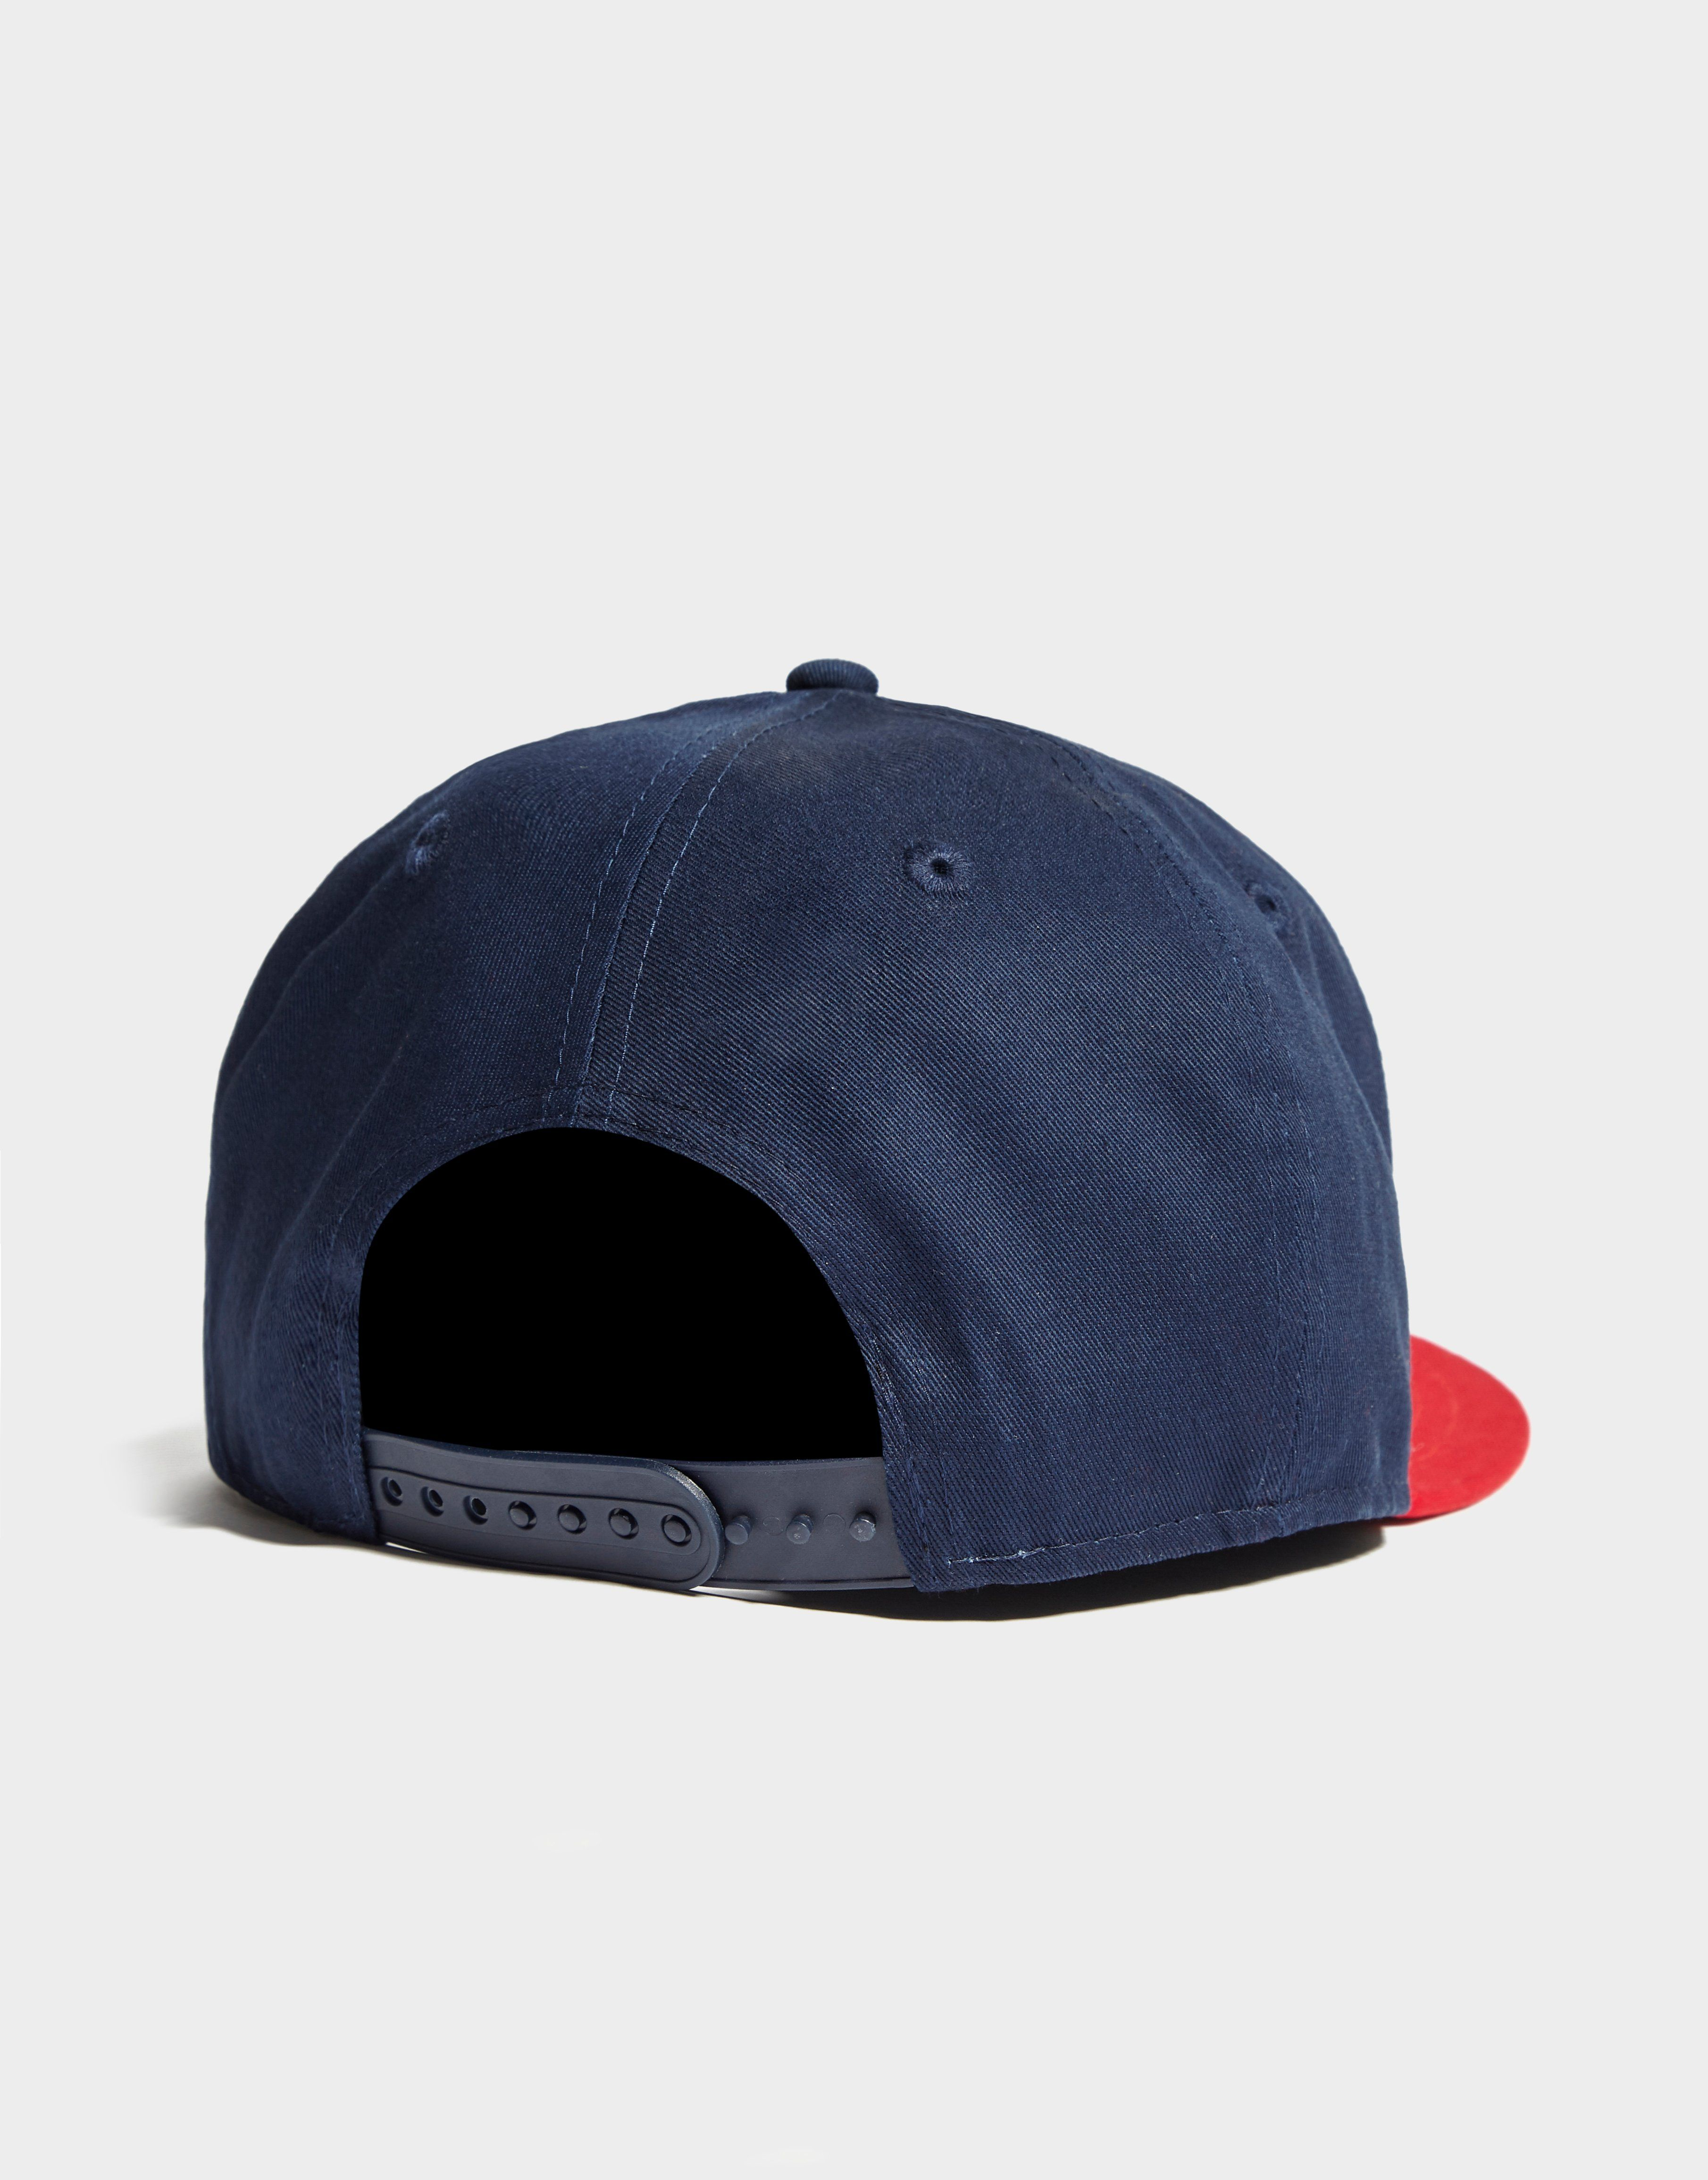 New Era Casquette NFL New England Patriots 9FIFTY